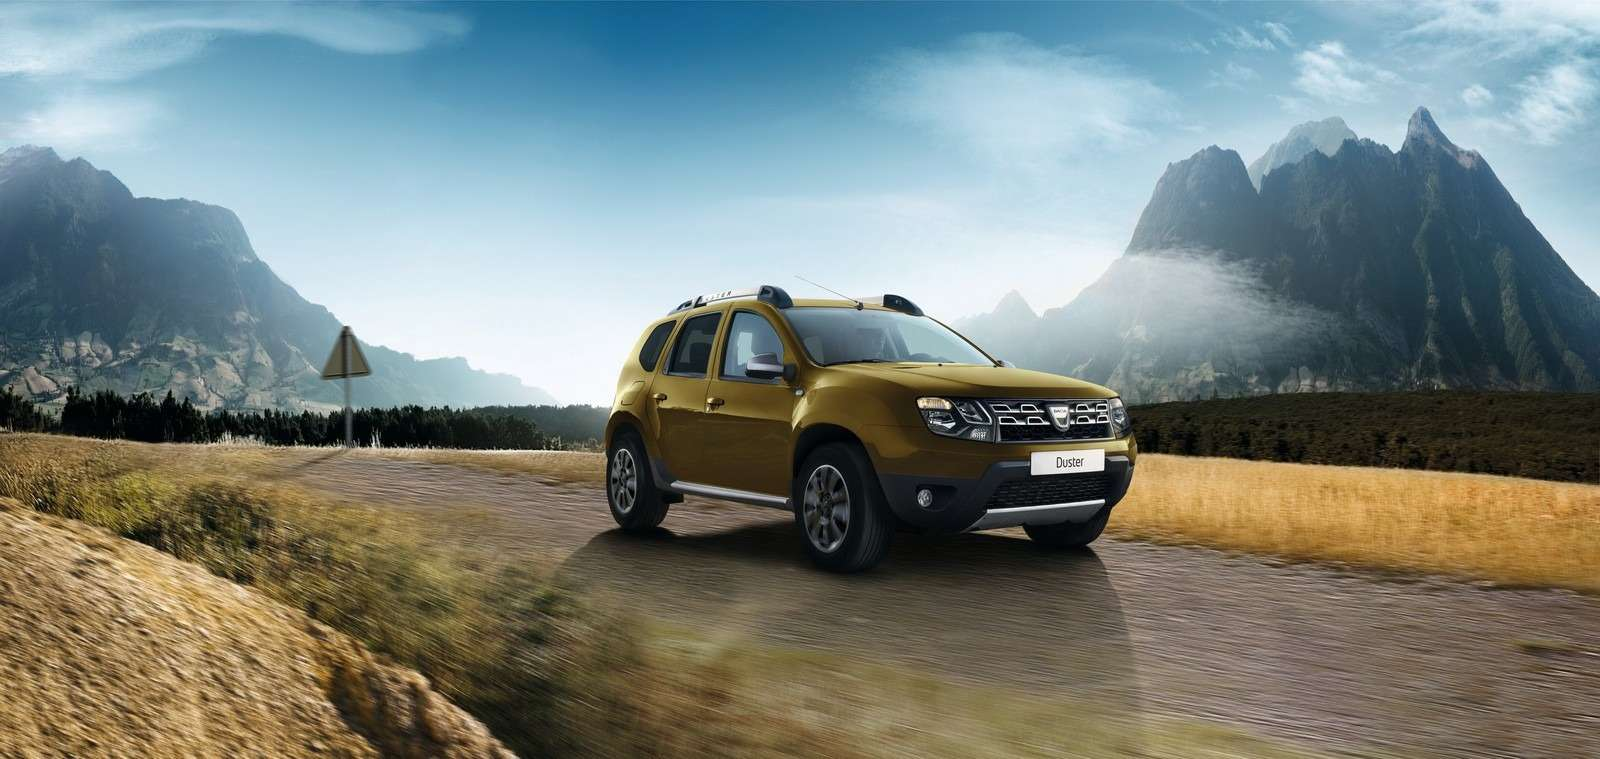 all-new-dacia-duster-caught-in-first-spyshots-plus-dacia-novelties-for-frankfurt-photo-gallery_12